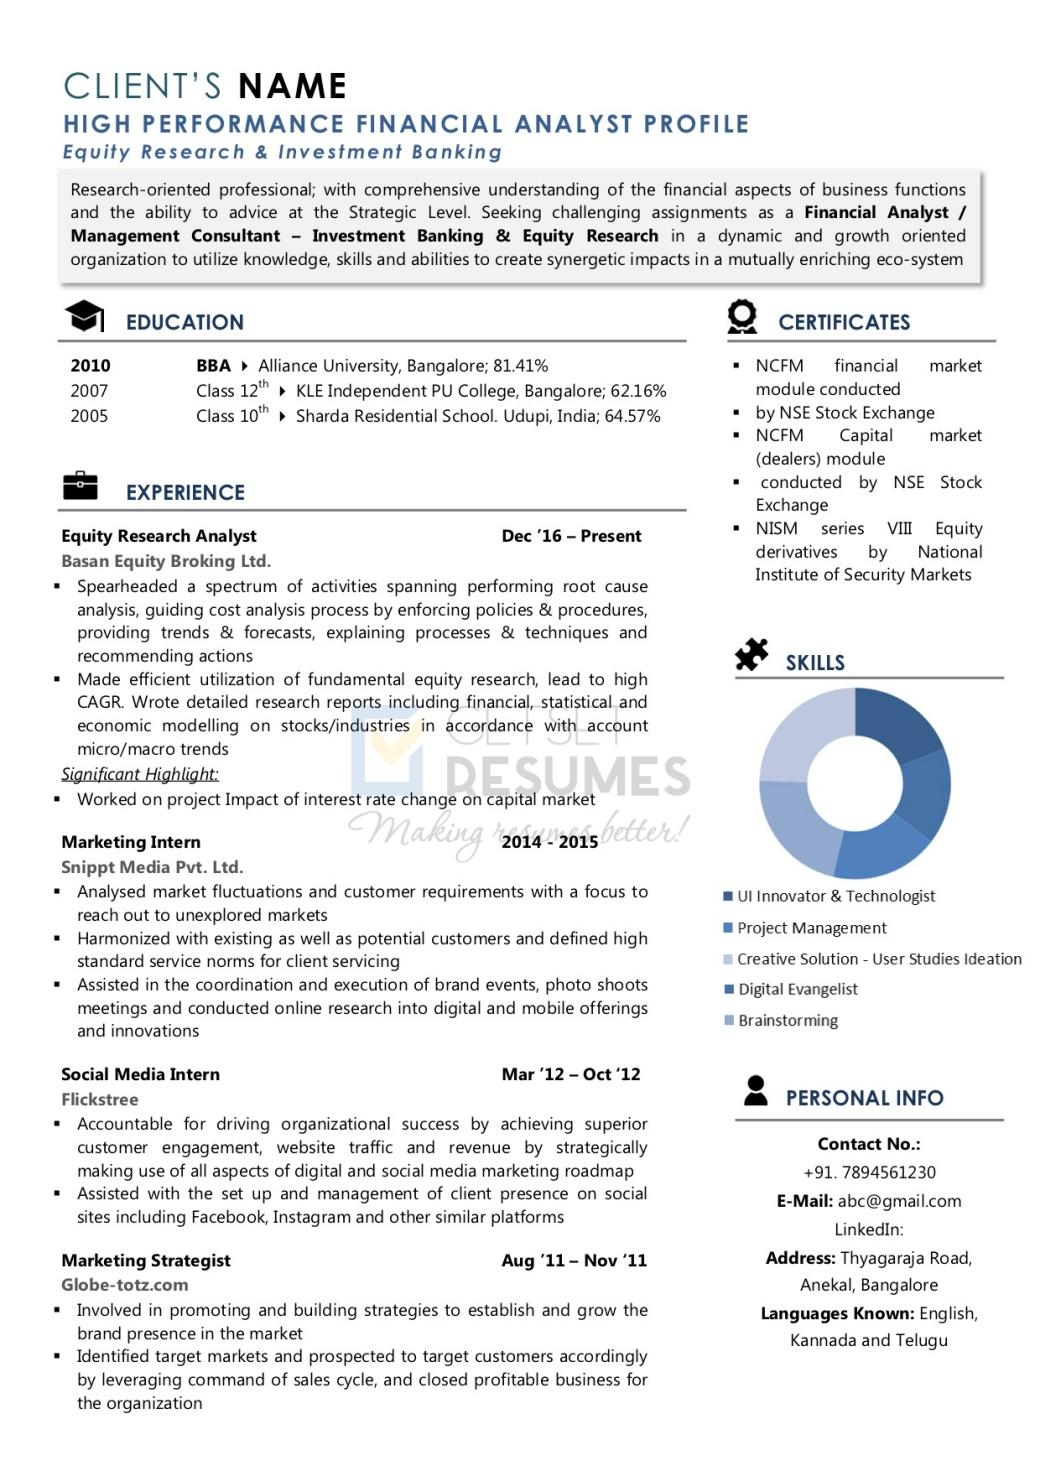 Resume Sample for Financial Analyst, Resume Sample for Equity Research, Resume Sample for Investment Analyst